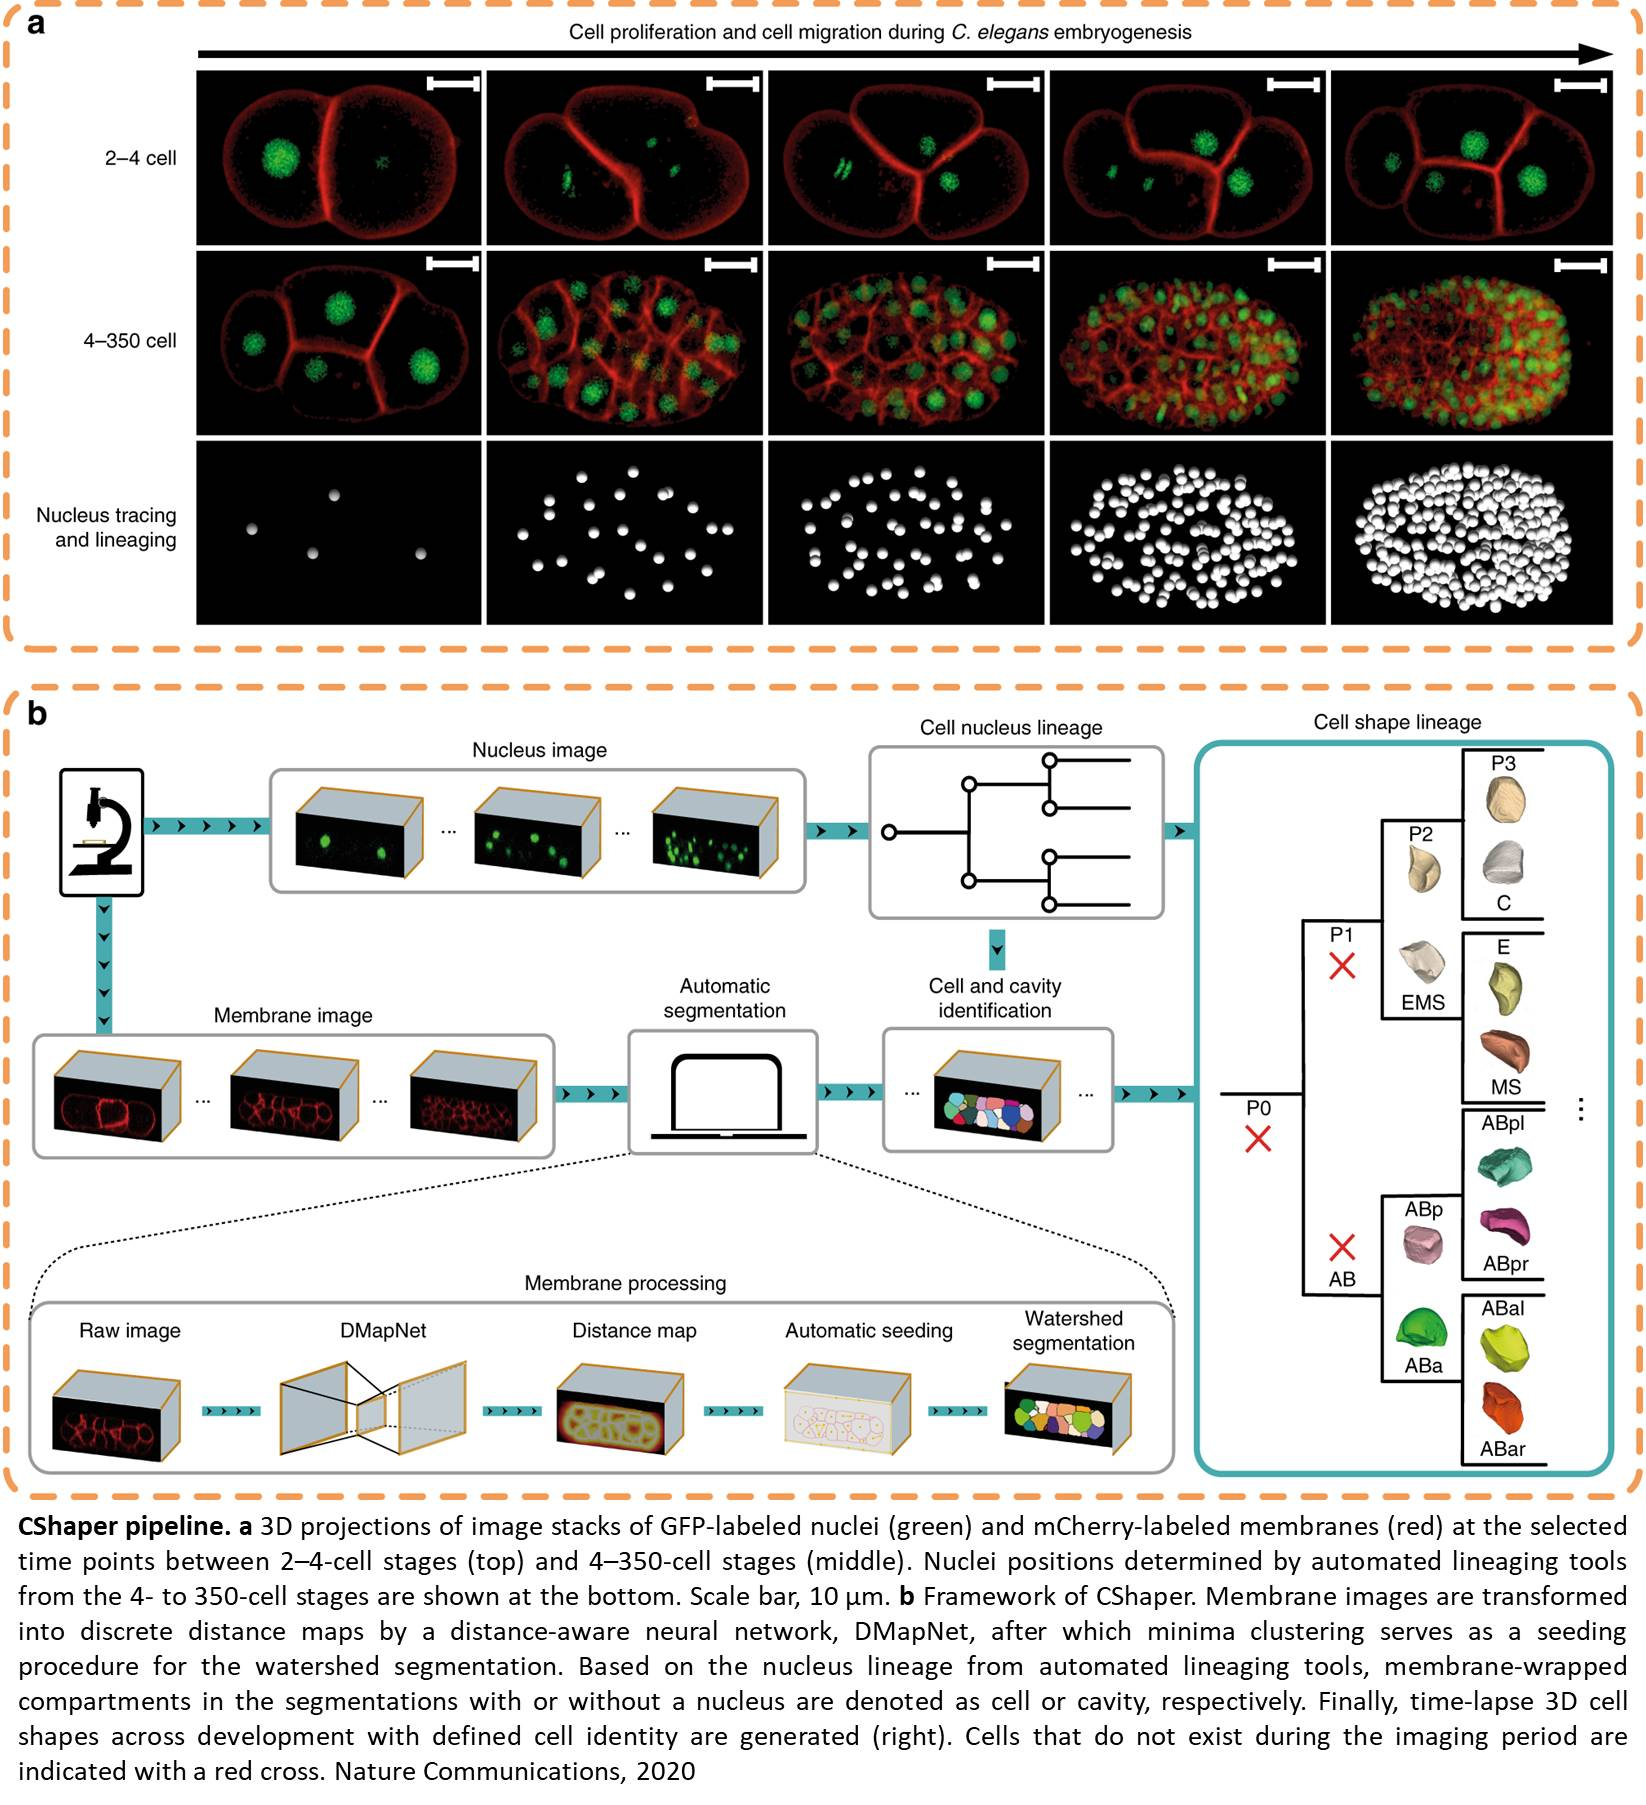 AI tool to analyze 4D cell morphology data